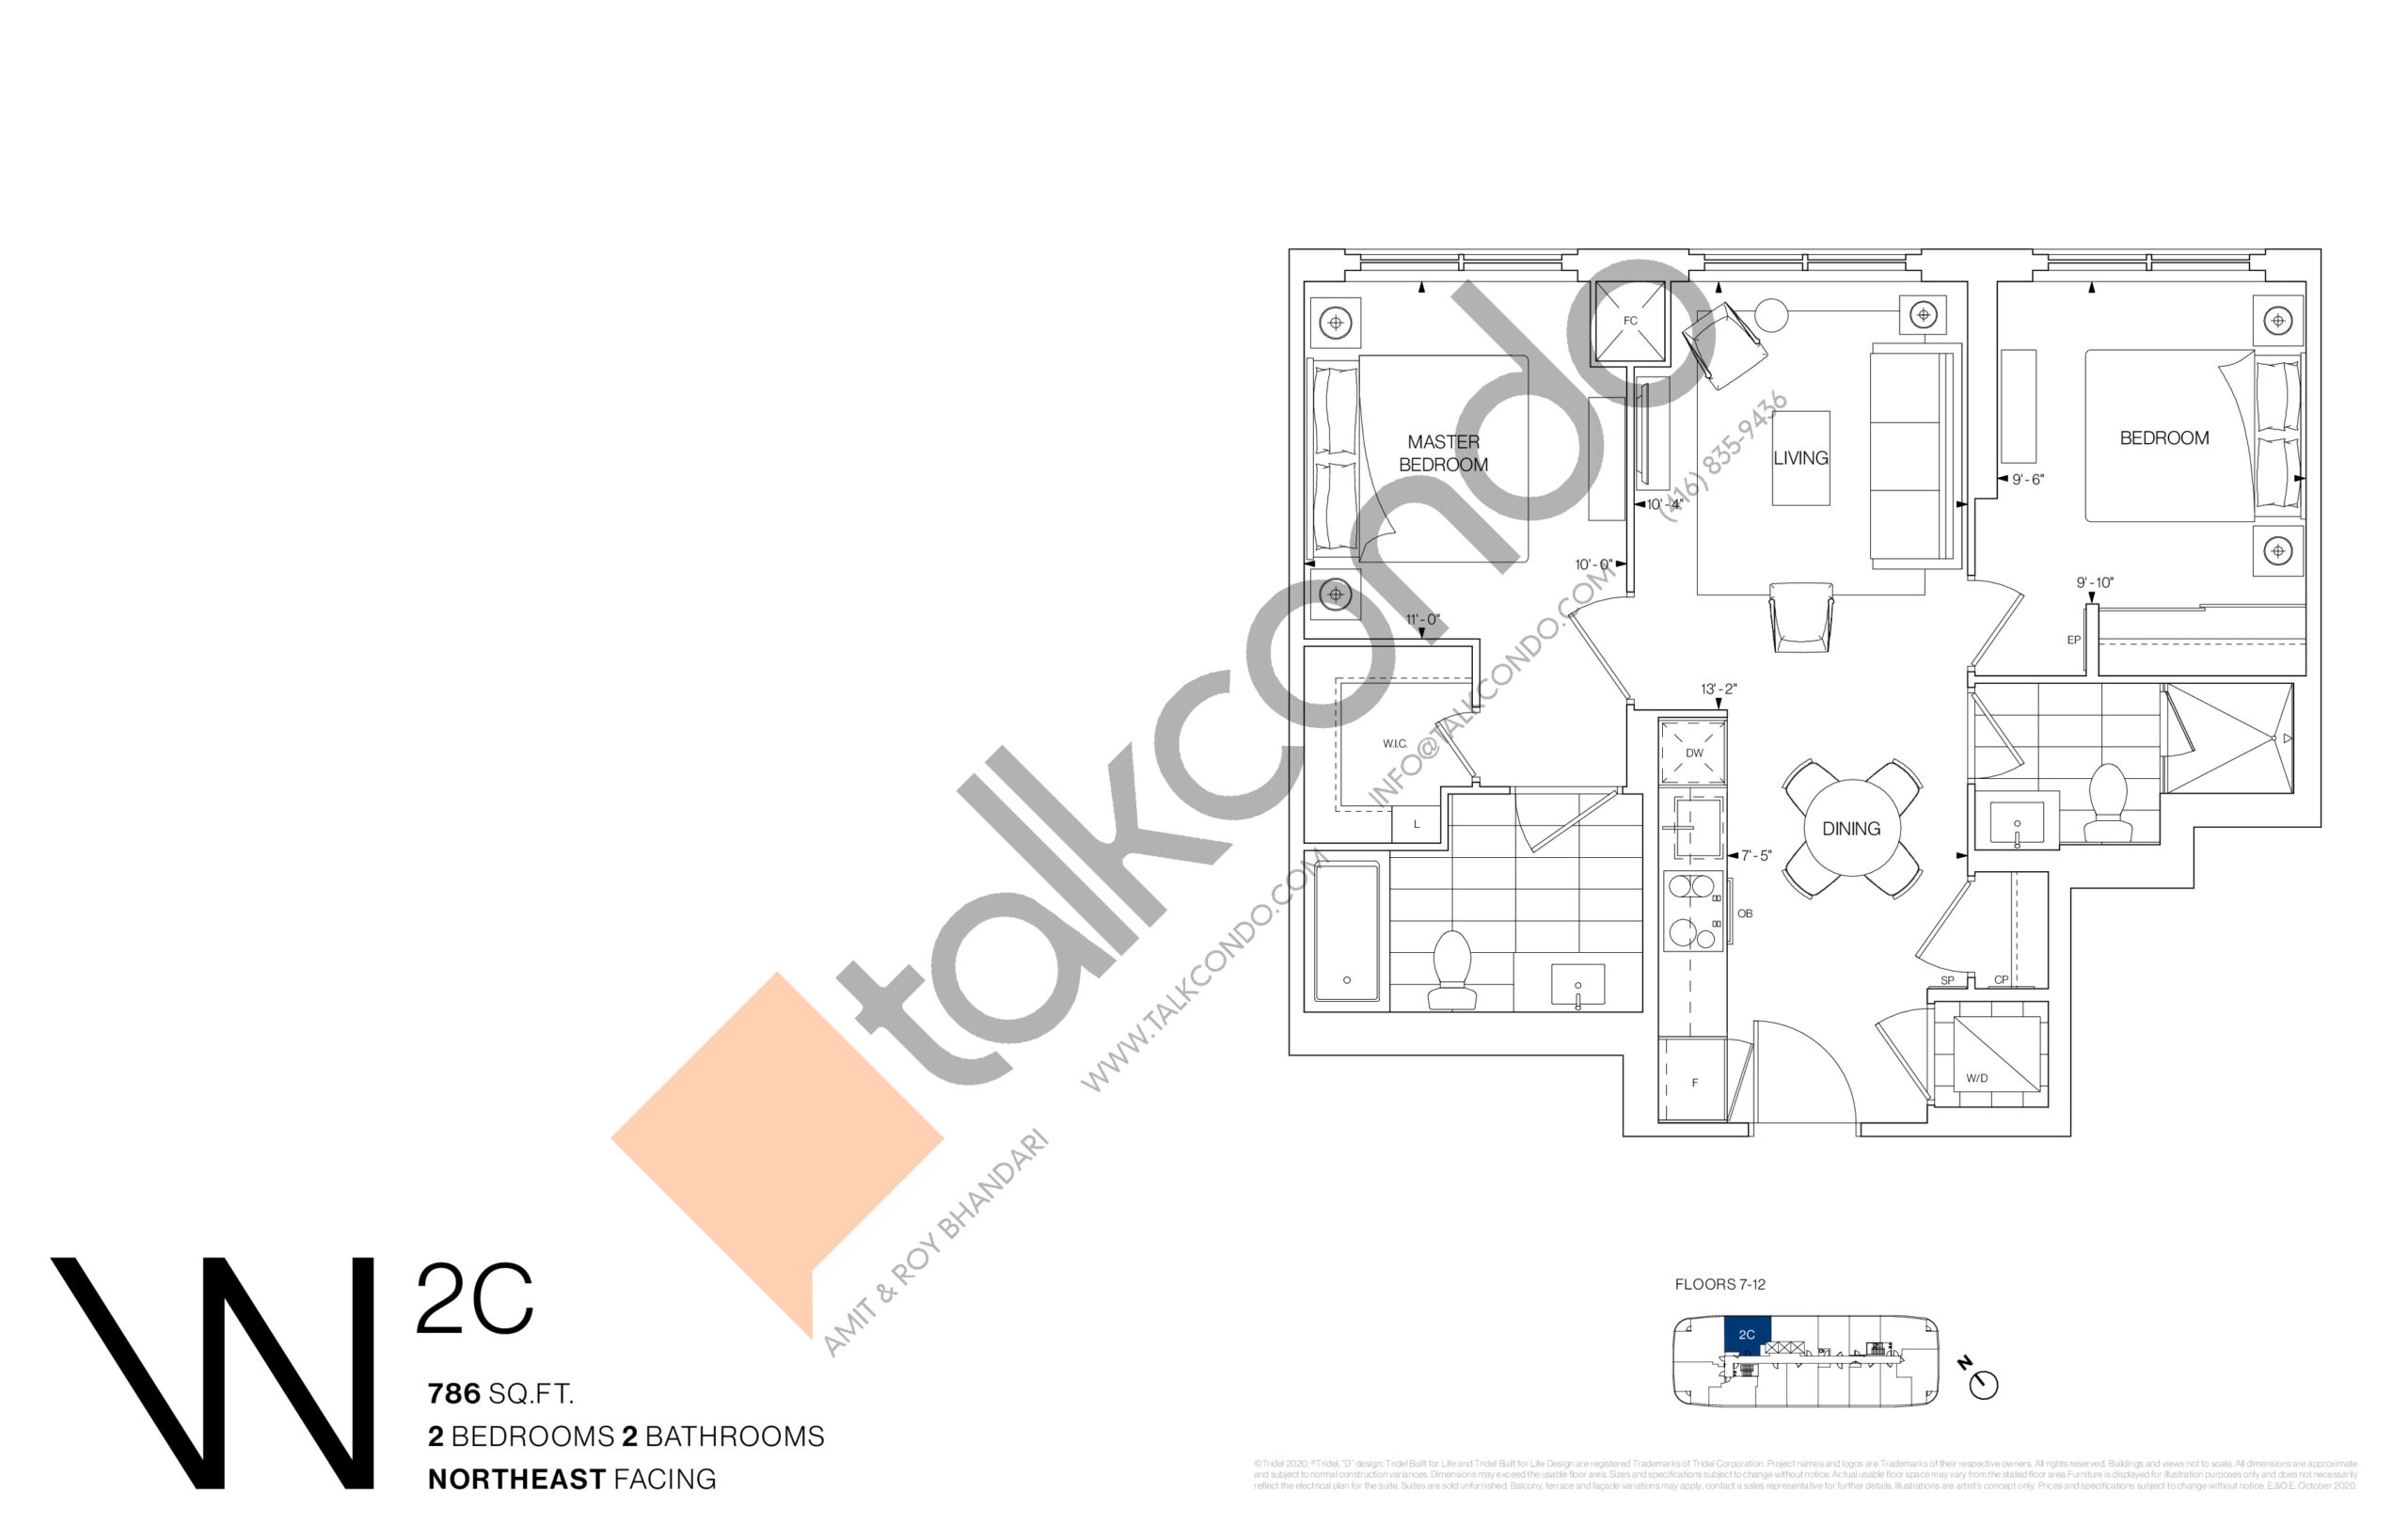 2C Floor Plan at Westerly Condos - 786 sq.ft